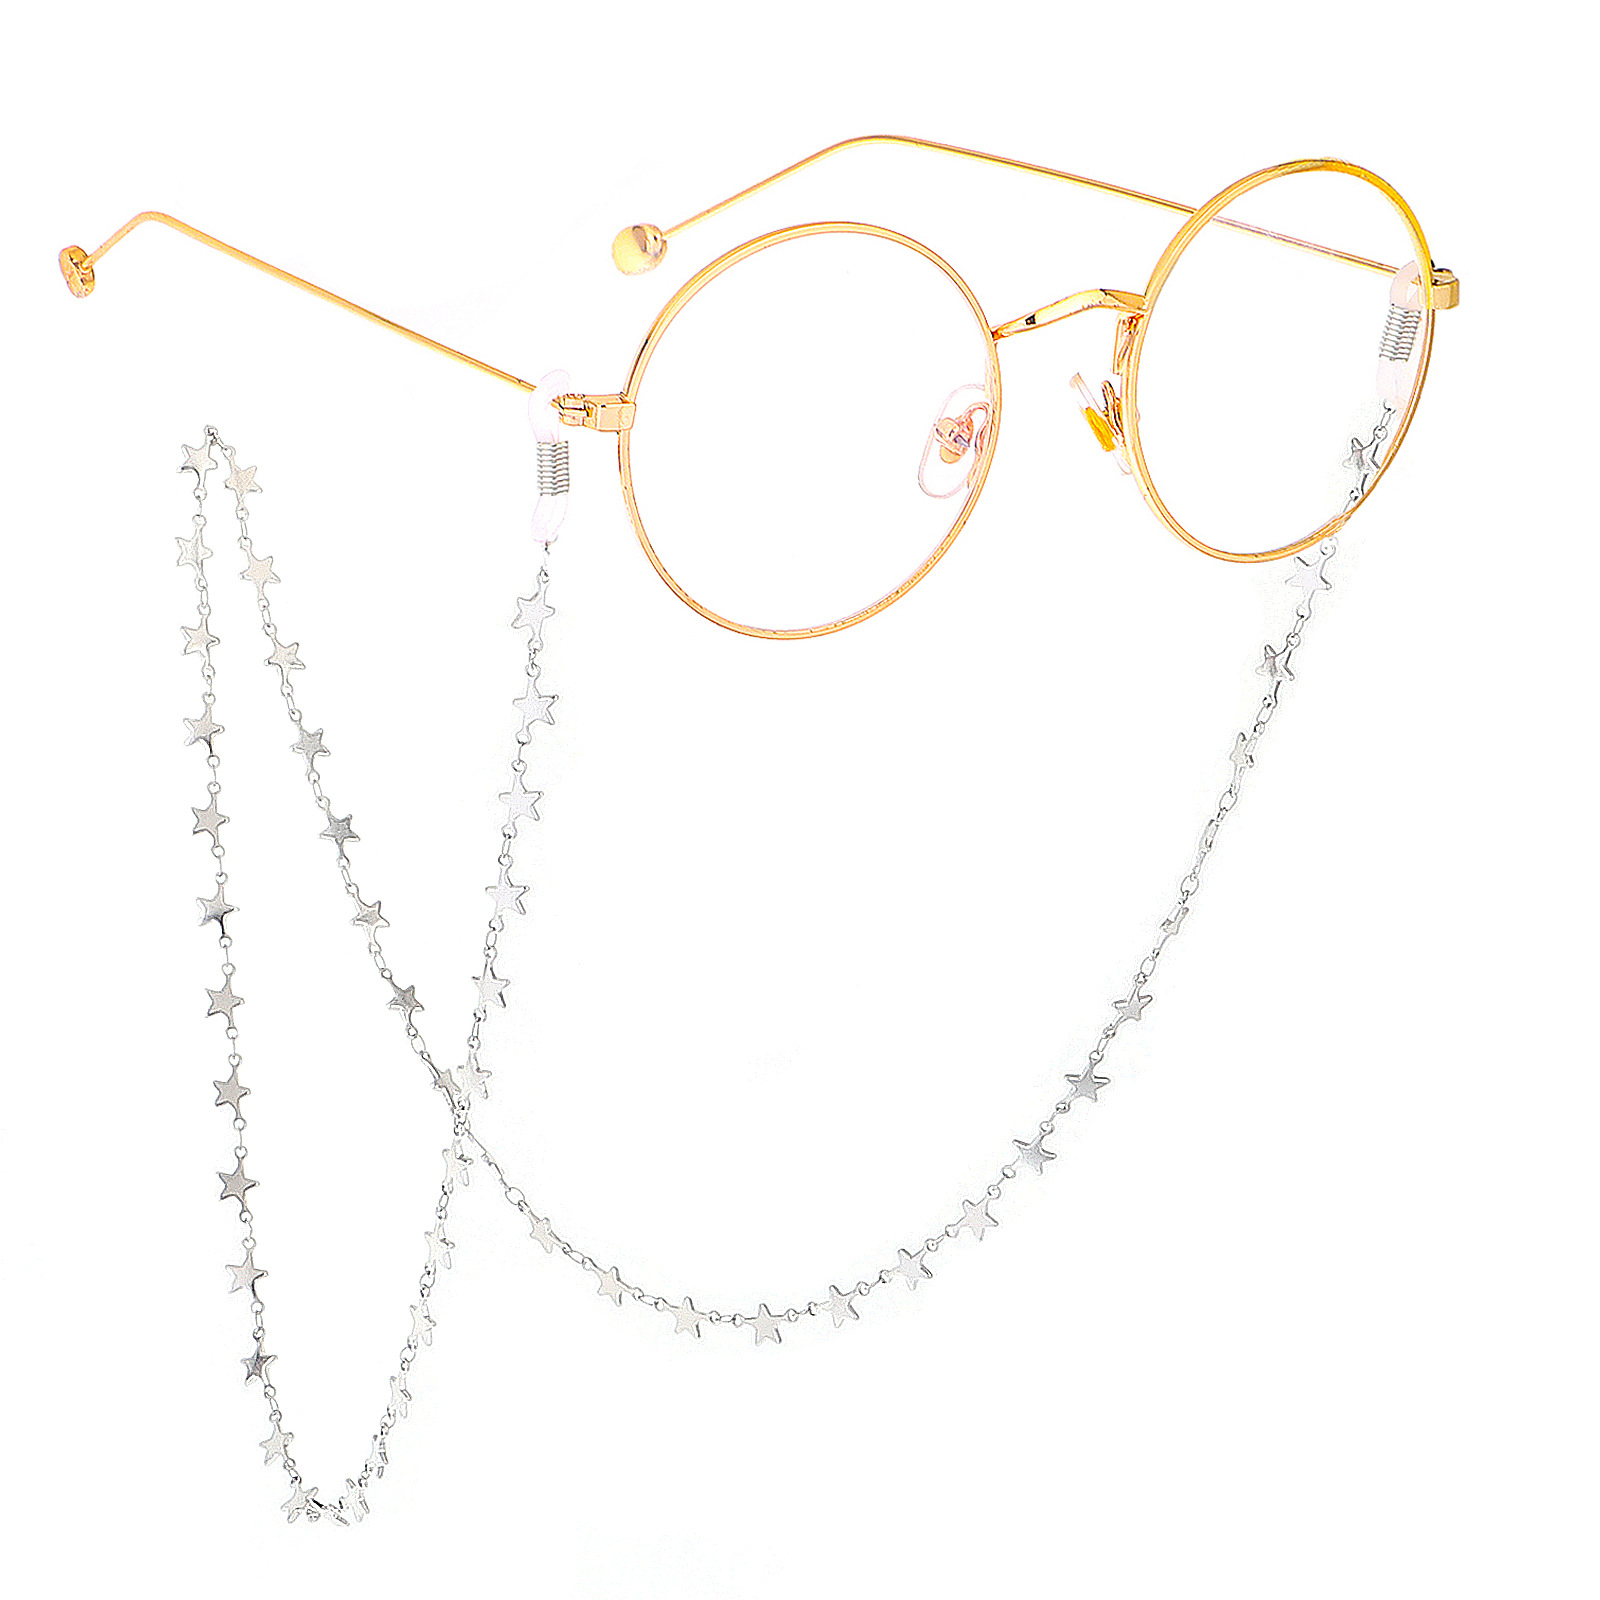 2019 Fashion Women Pendant Eyeglass Chains Sunglasses Stars Pendant Glasses Chain Eyewears Cord Holder neck strap Rope Accessary in Eyewear Accessories from Apparel Accessories